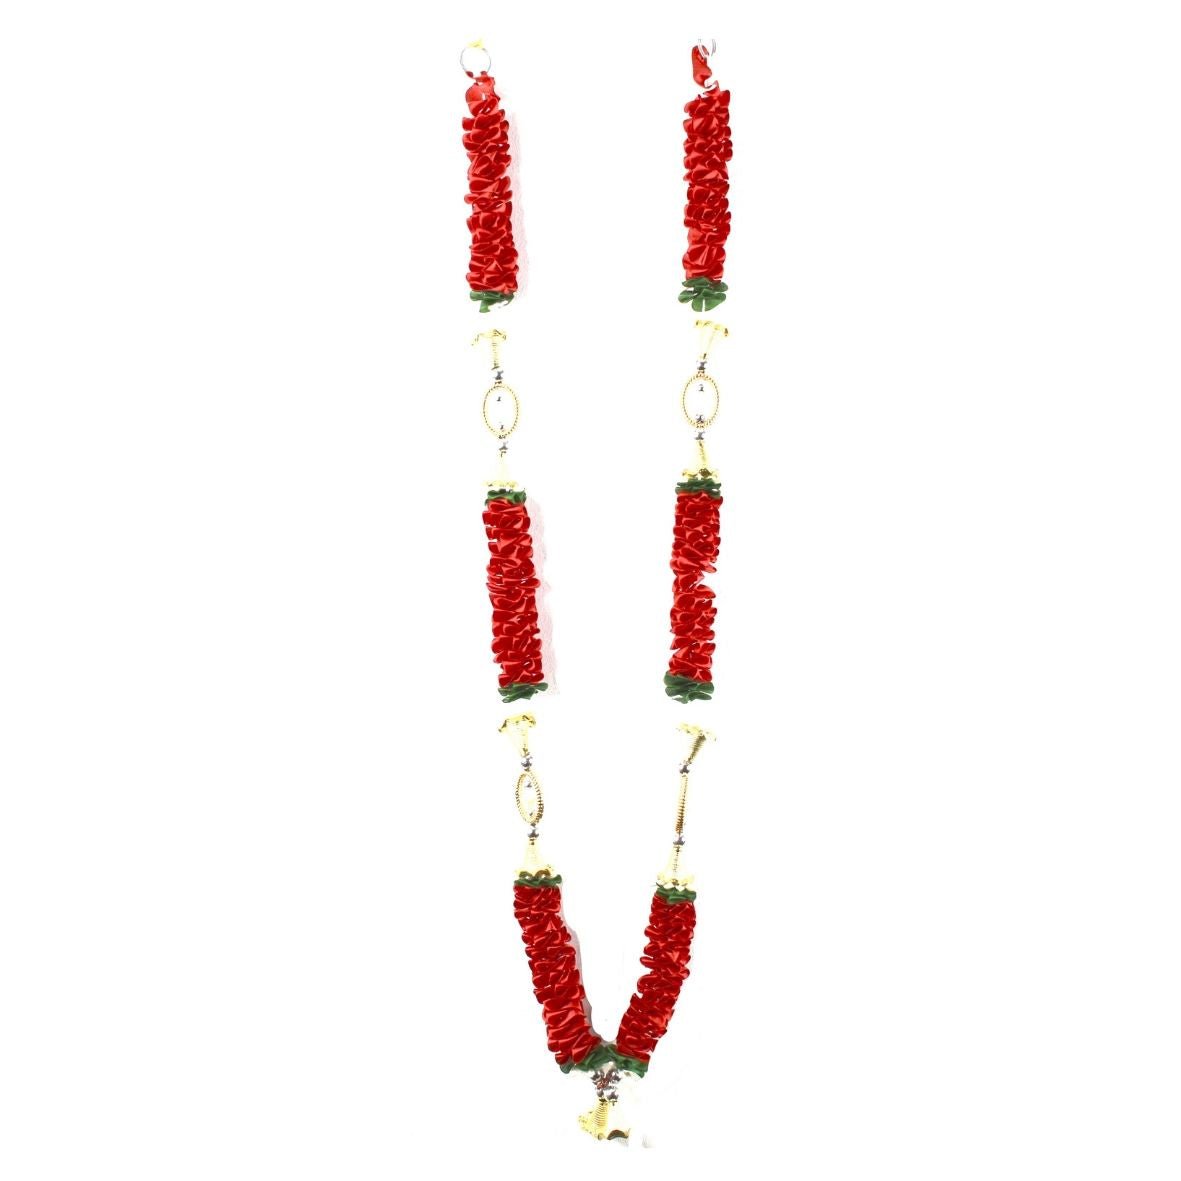 1 x Red / Green / Oval Frame Artificial Necklace Garland Flowers with Gold Bells